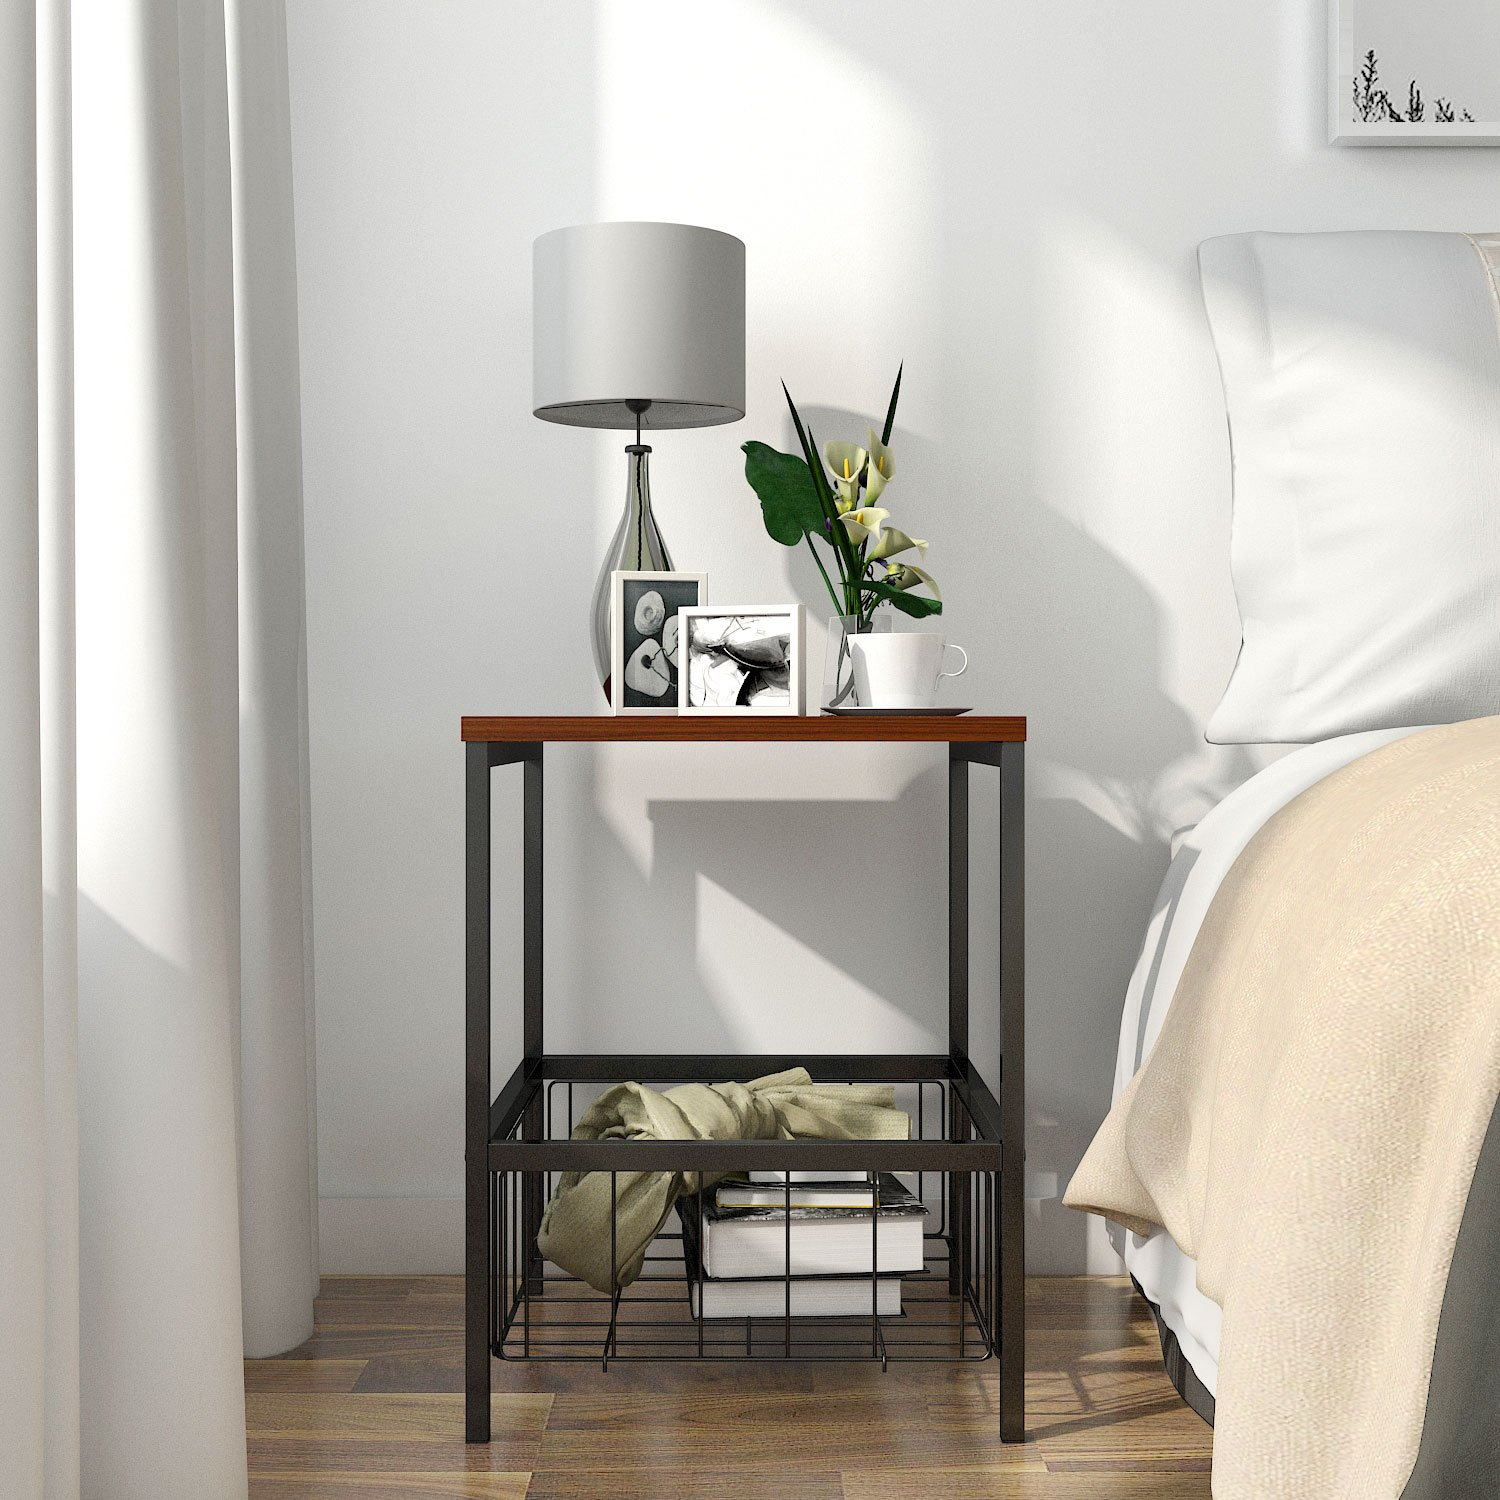 Amazon com lifewit 2 tier nightstand with storage basket sofa table end table for bedroom living room modern design brown 15 7 x 15 7 x 20 inches home